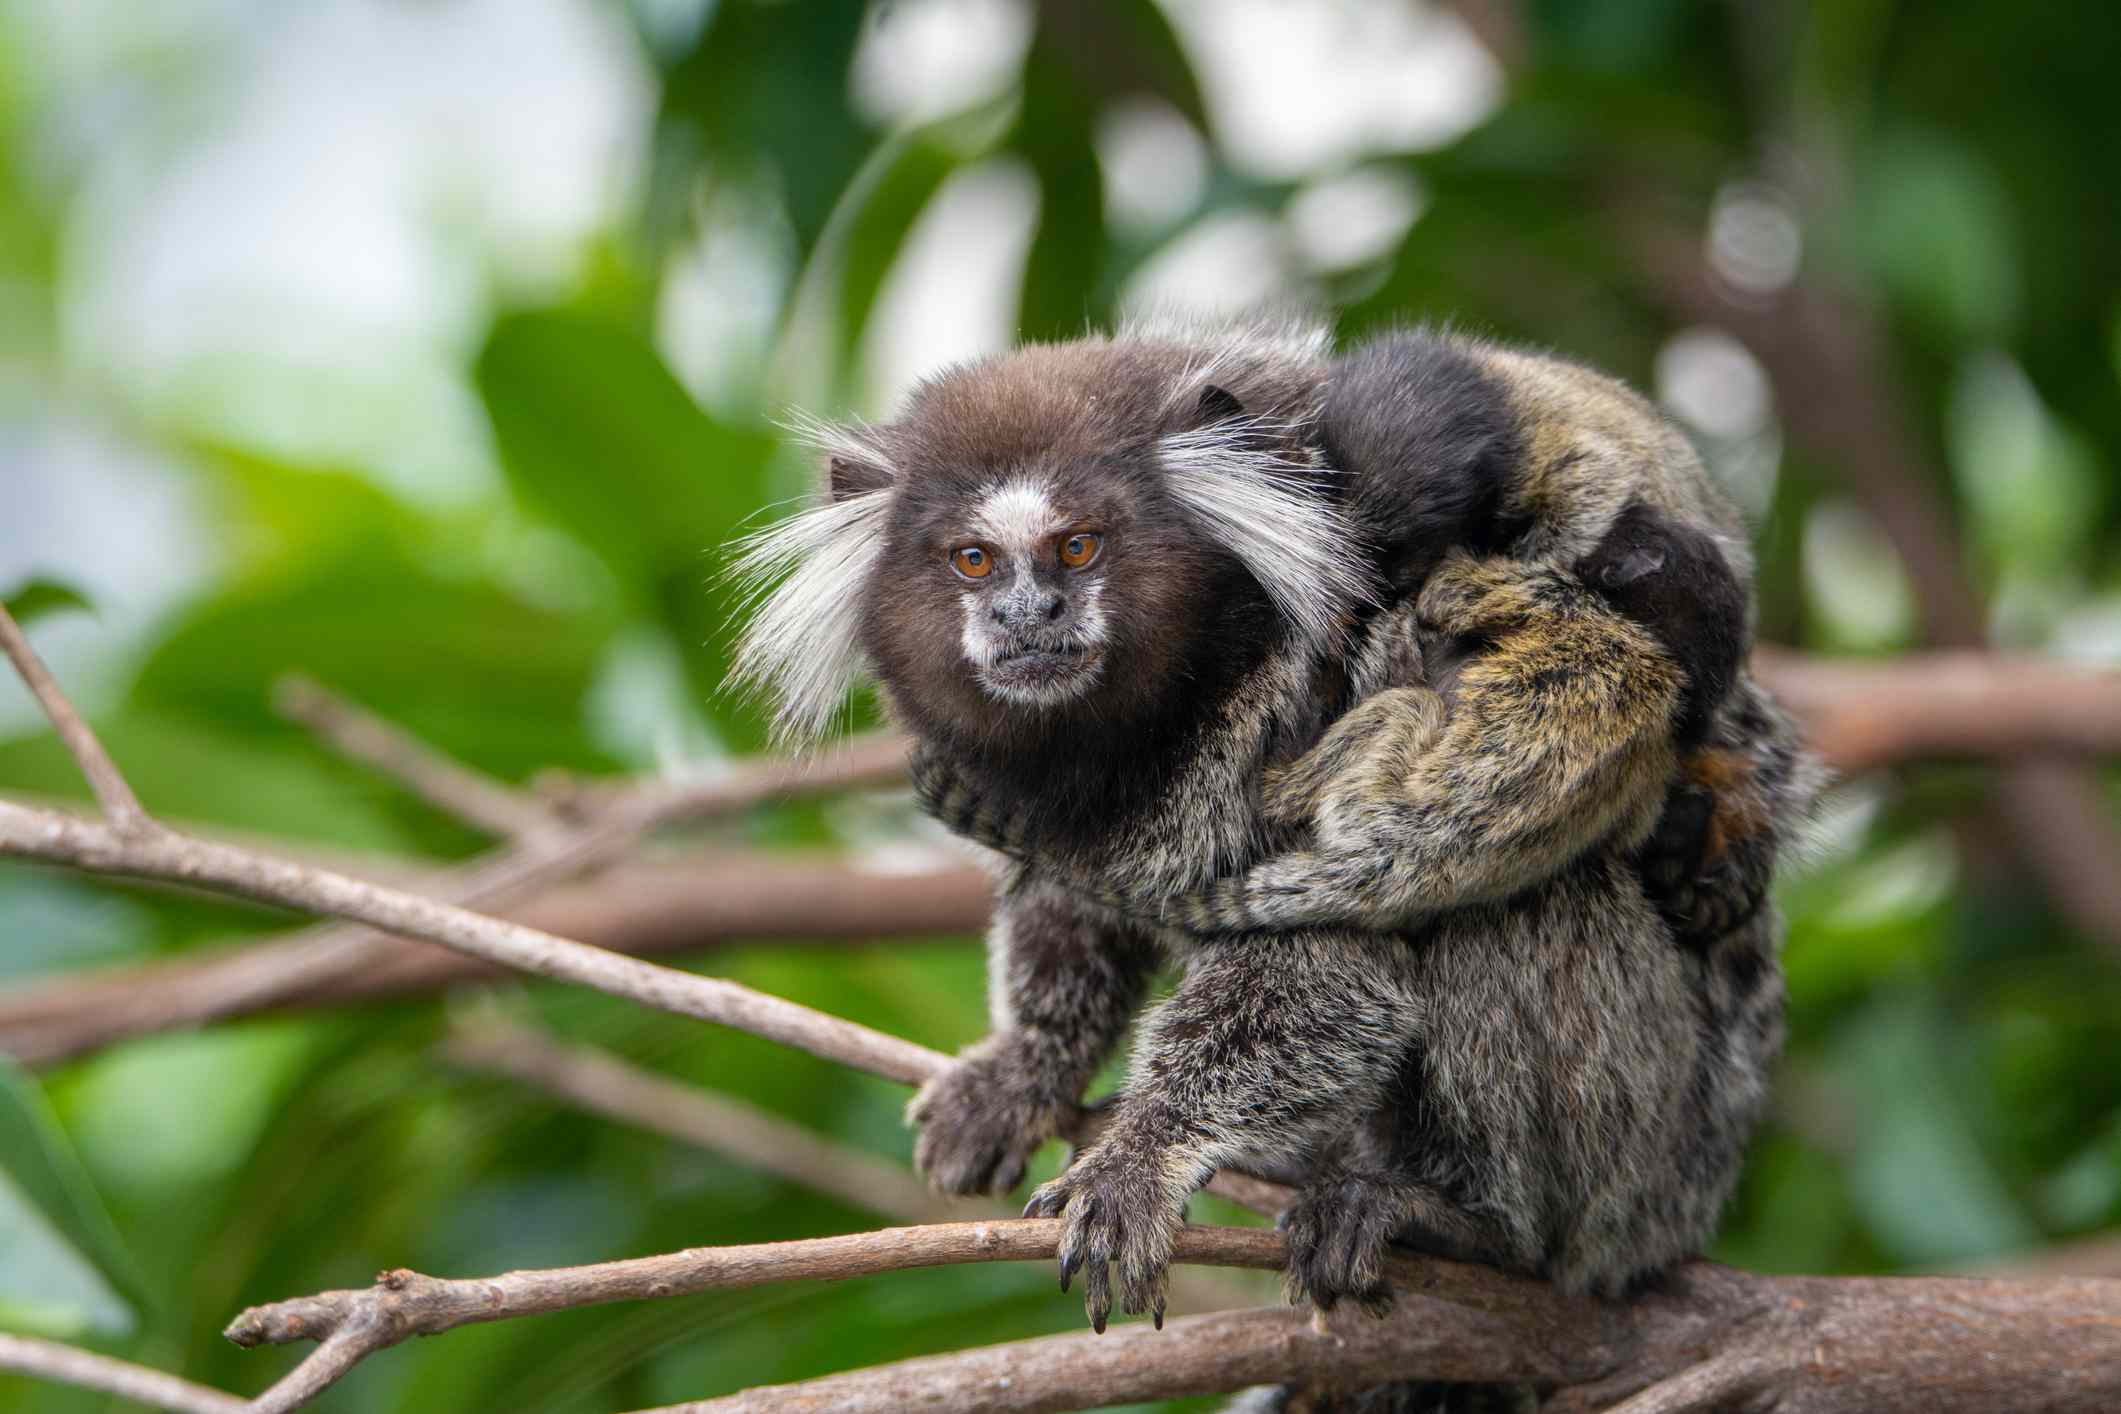 A brown female marmoset with white tufts of fur on either side of her head holding her babies